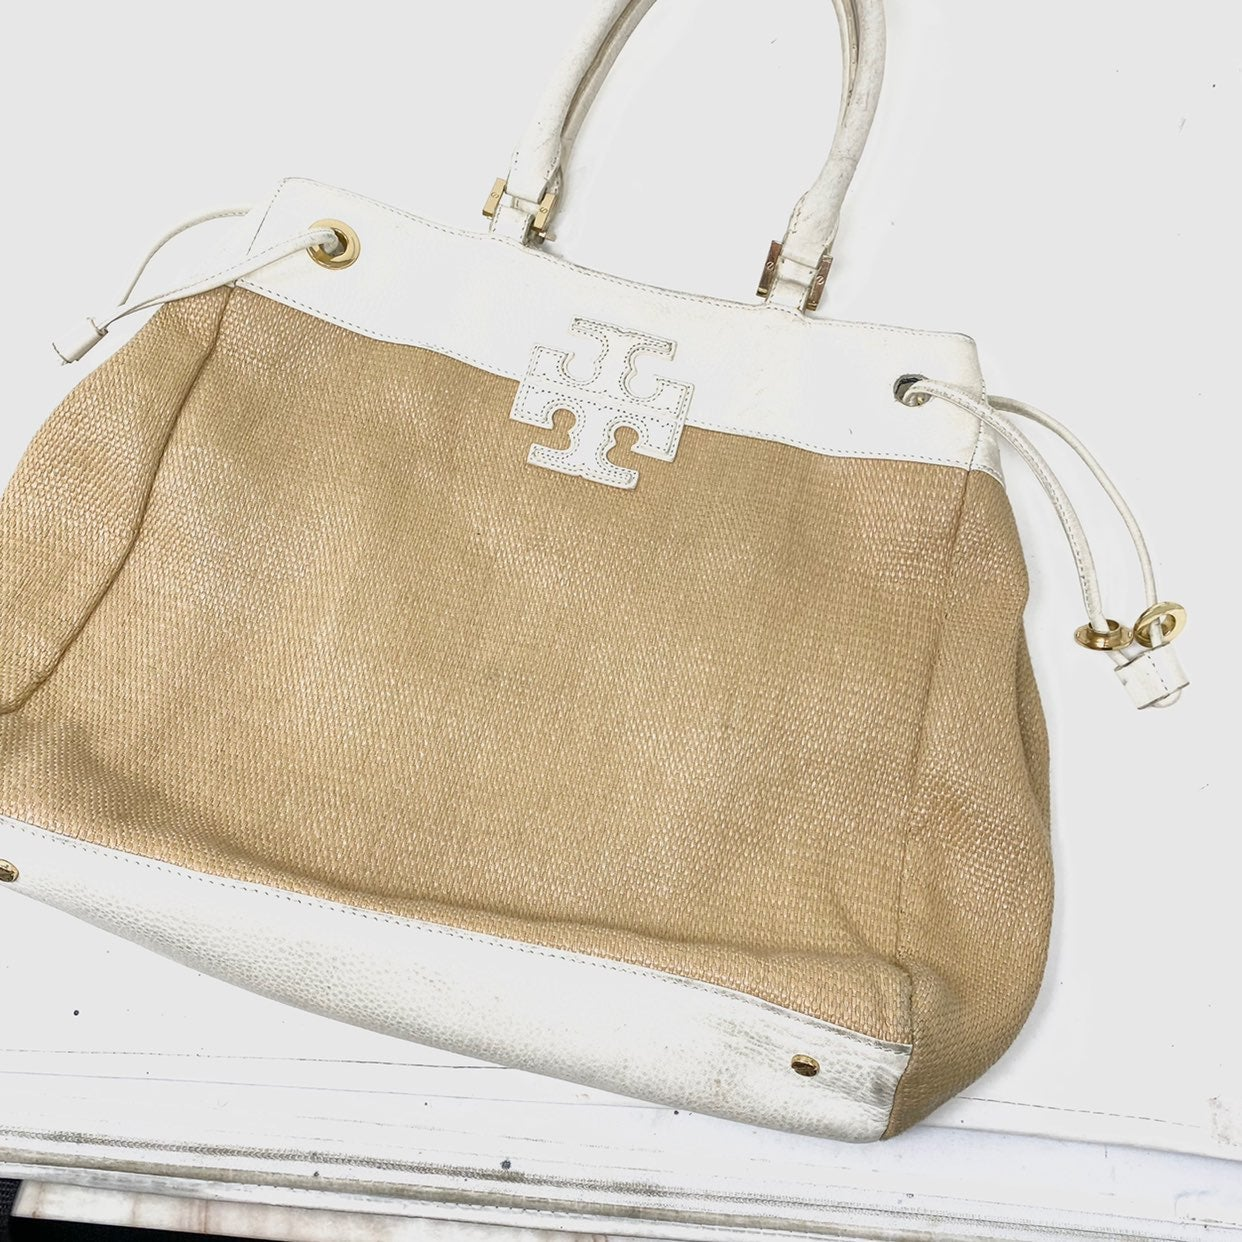 Tory Burch straw white leather tote